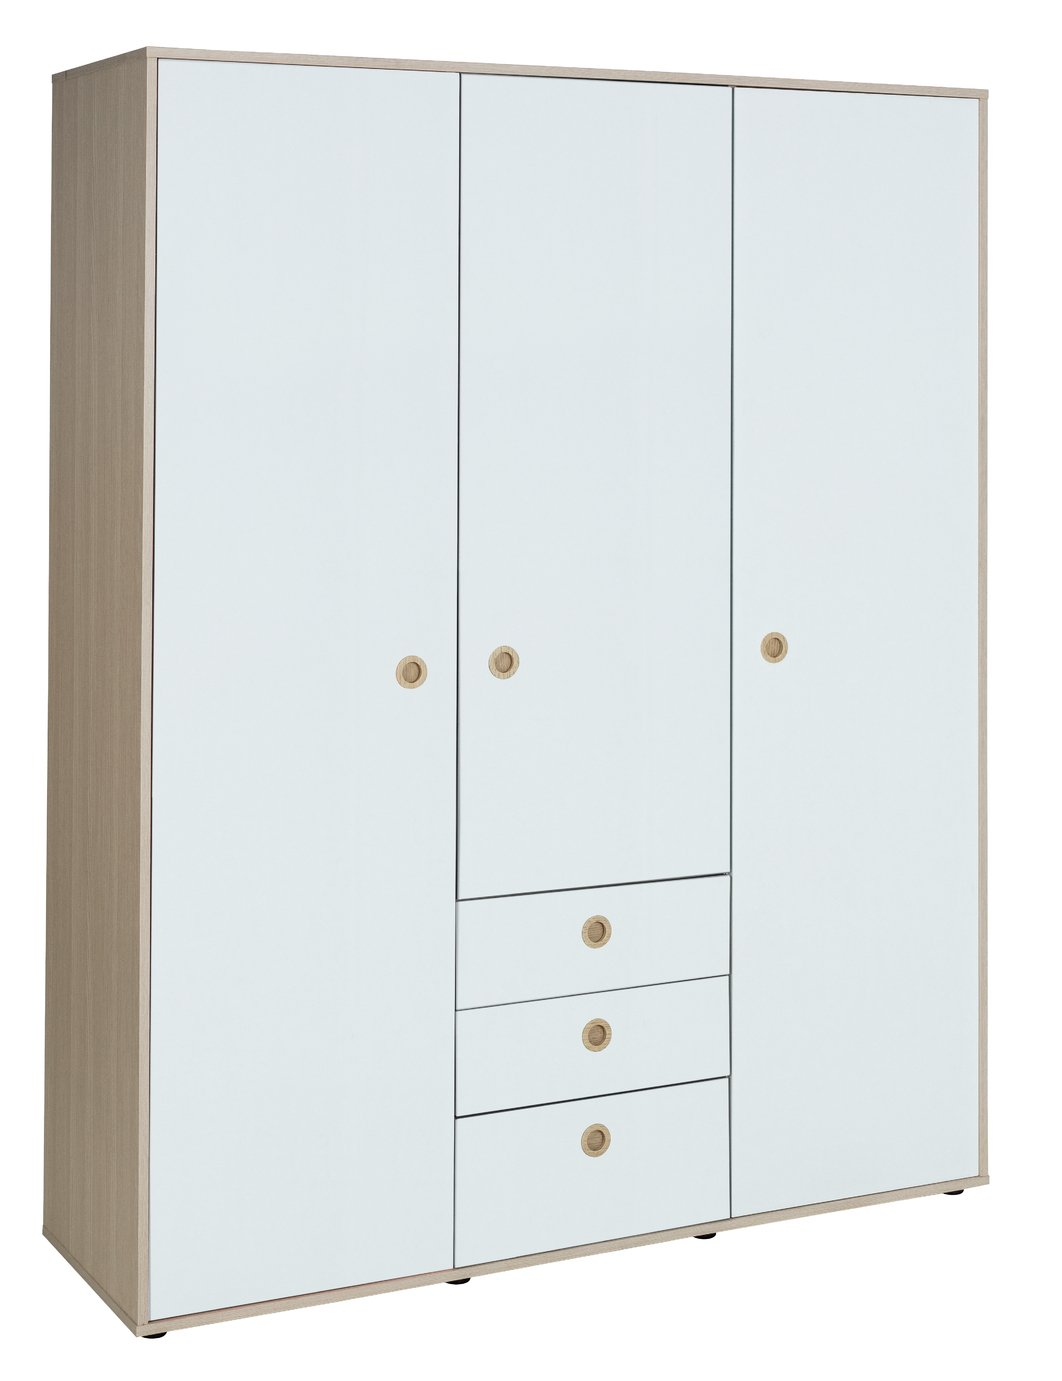 Argos Home Camden White & Acacia 3 Door Wardrobe